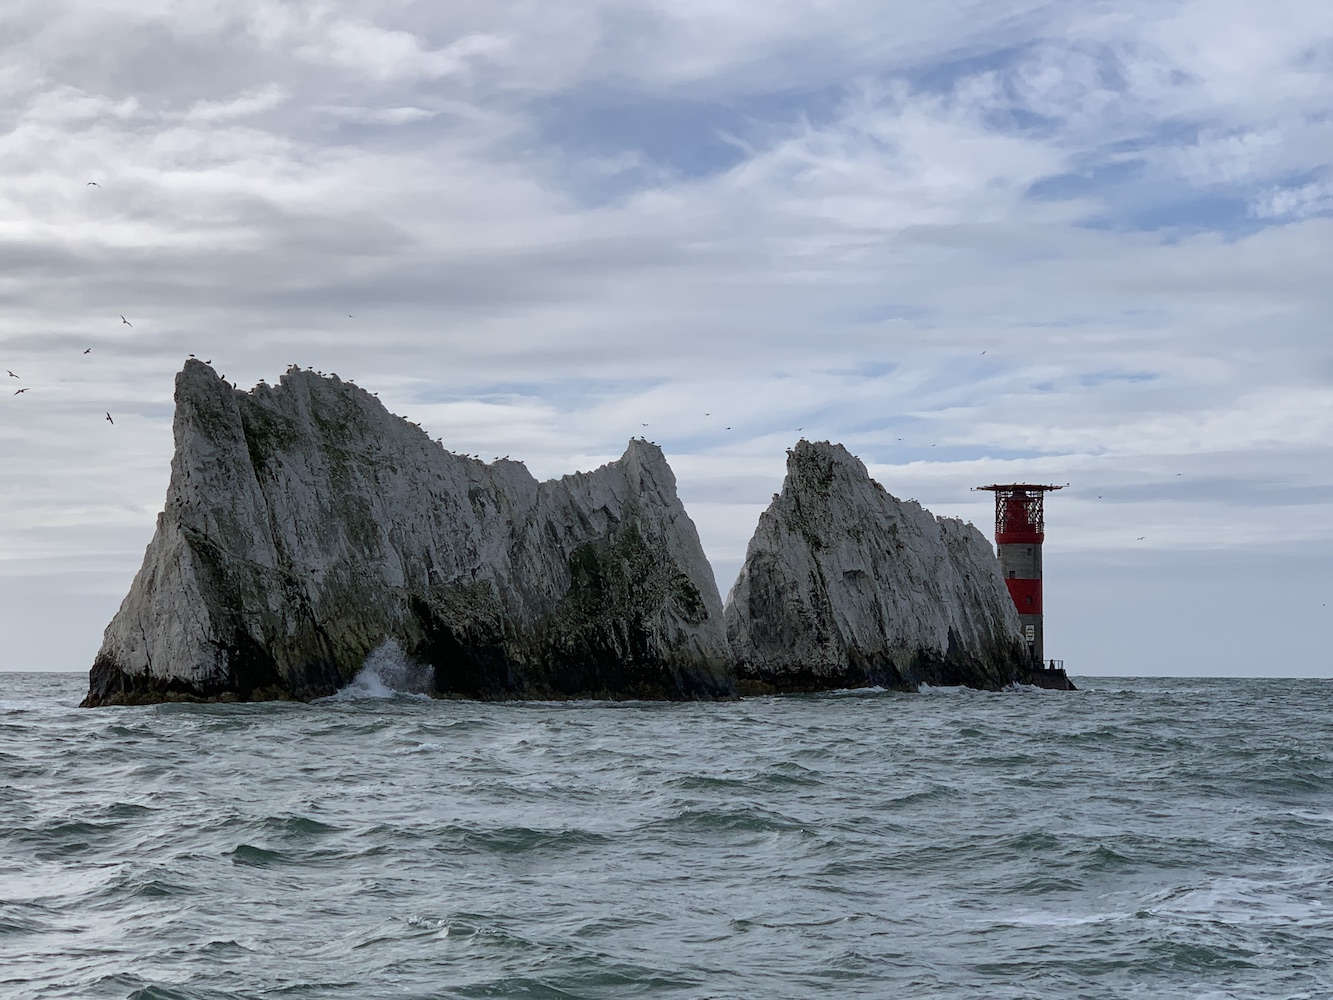 Needles and lighthouse